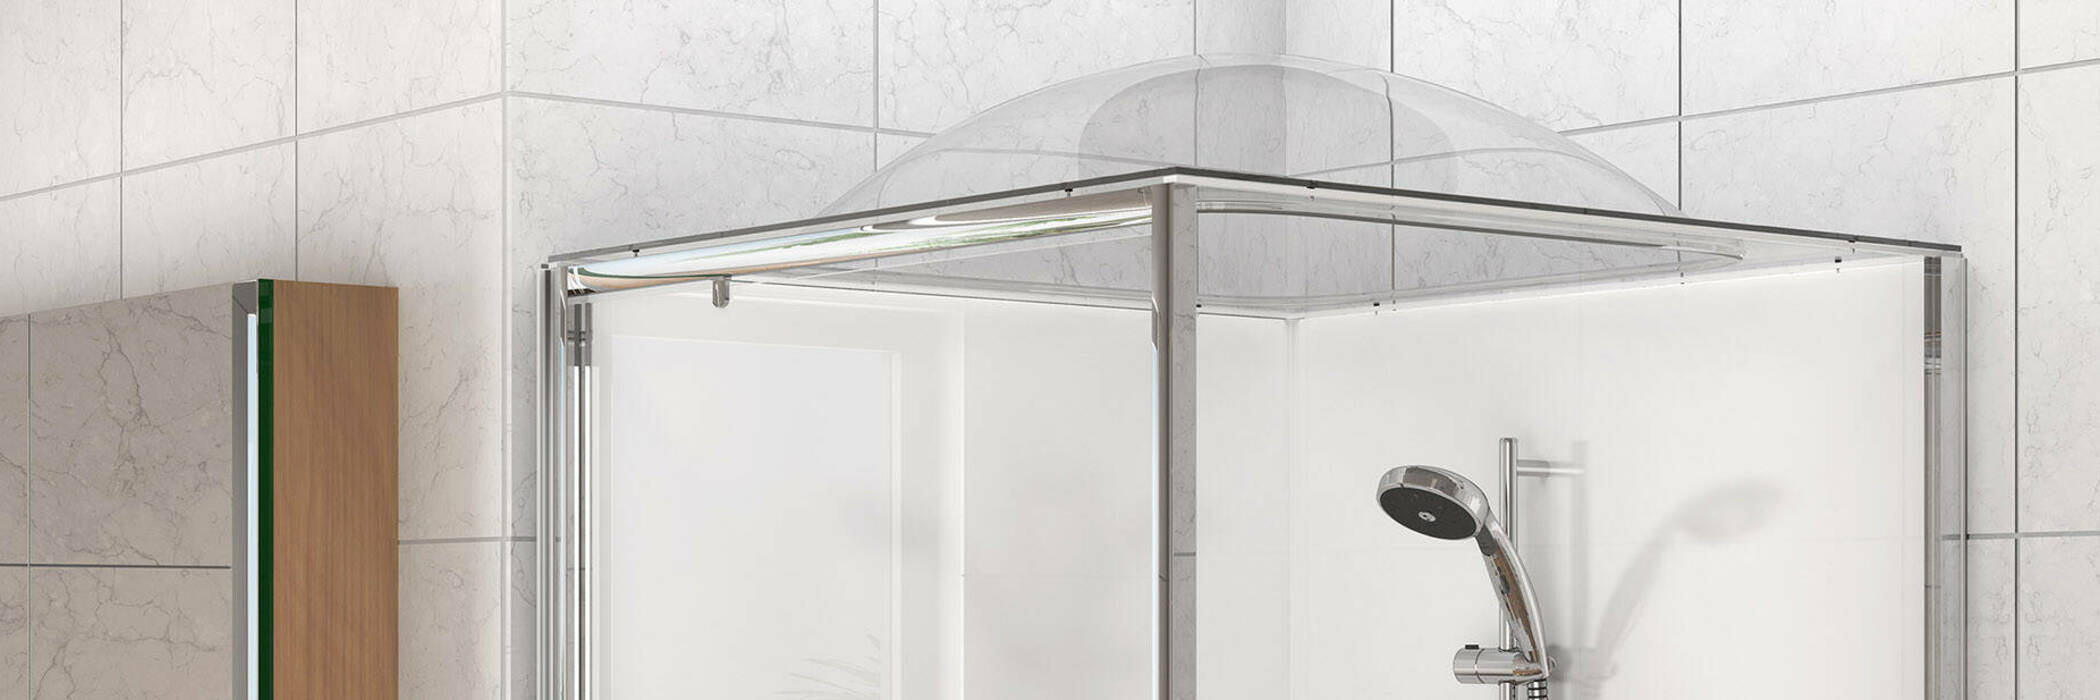 A shower with a Showerdome installed on top.